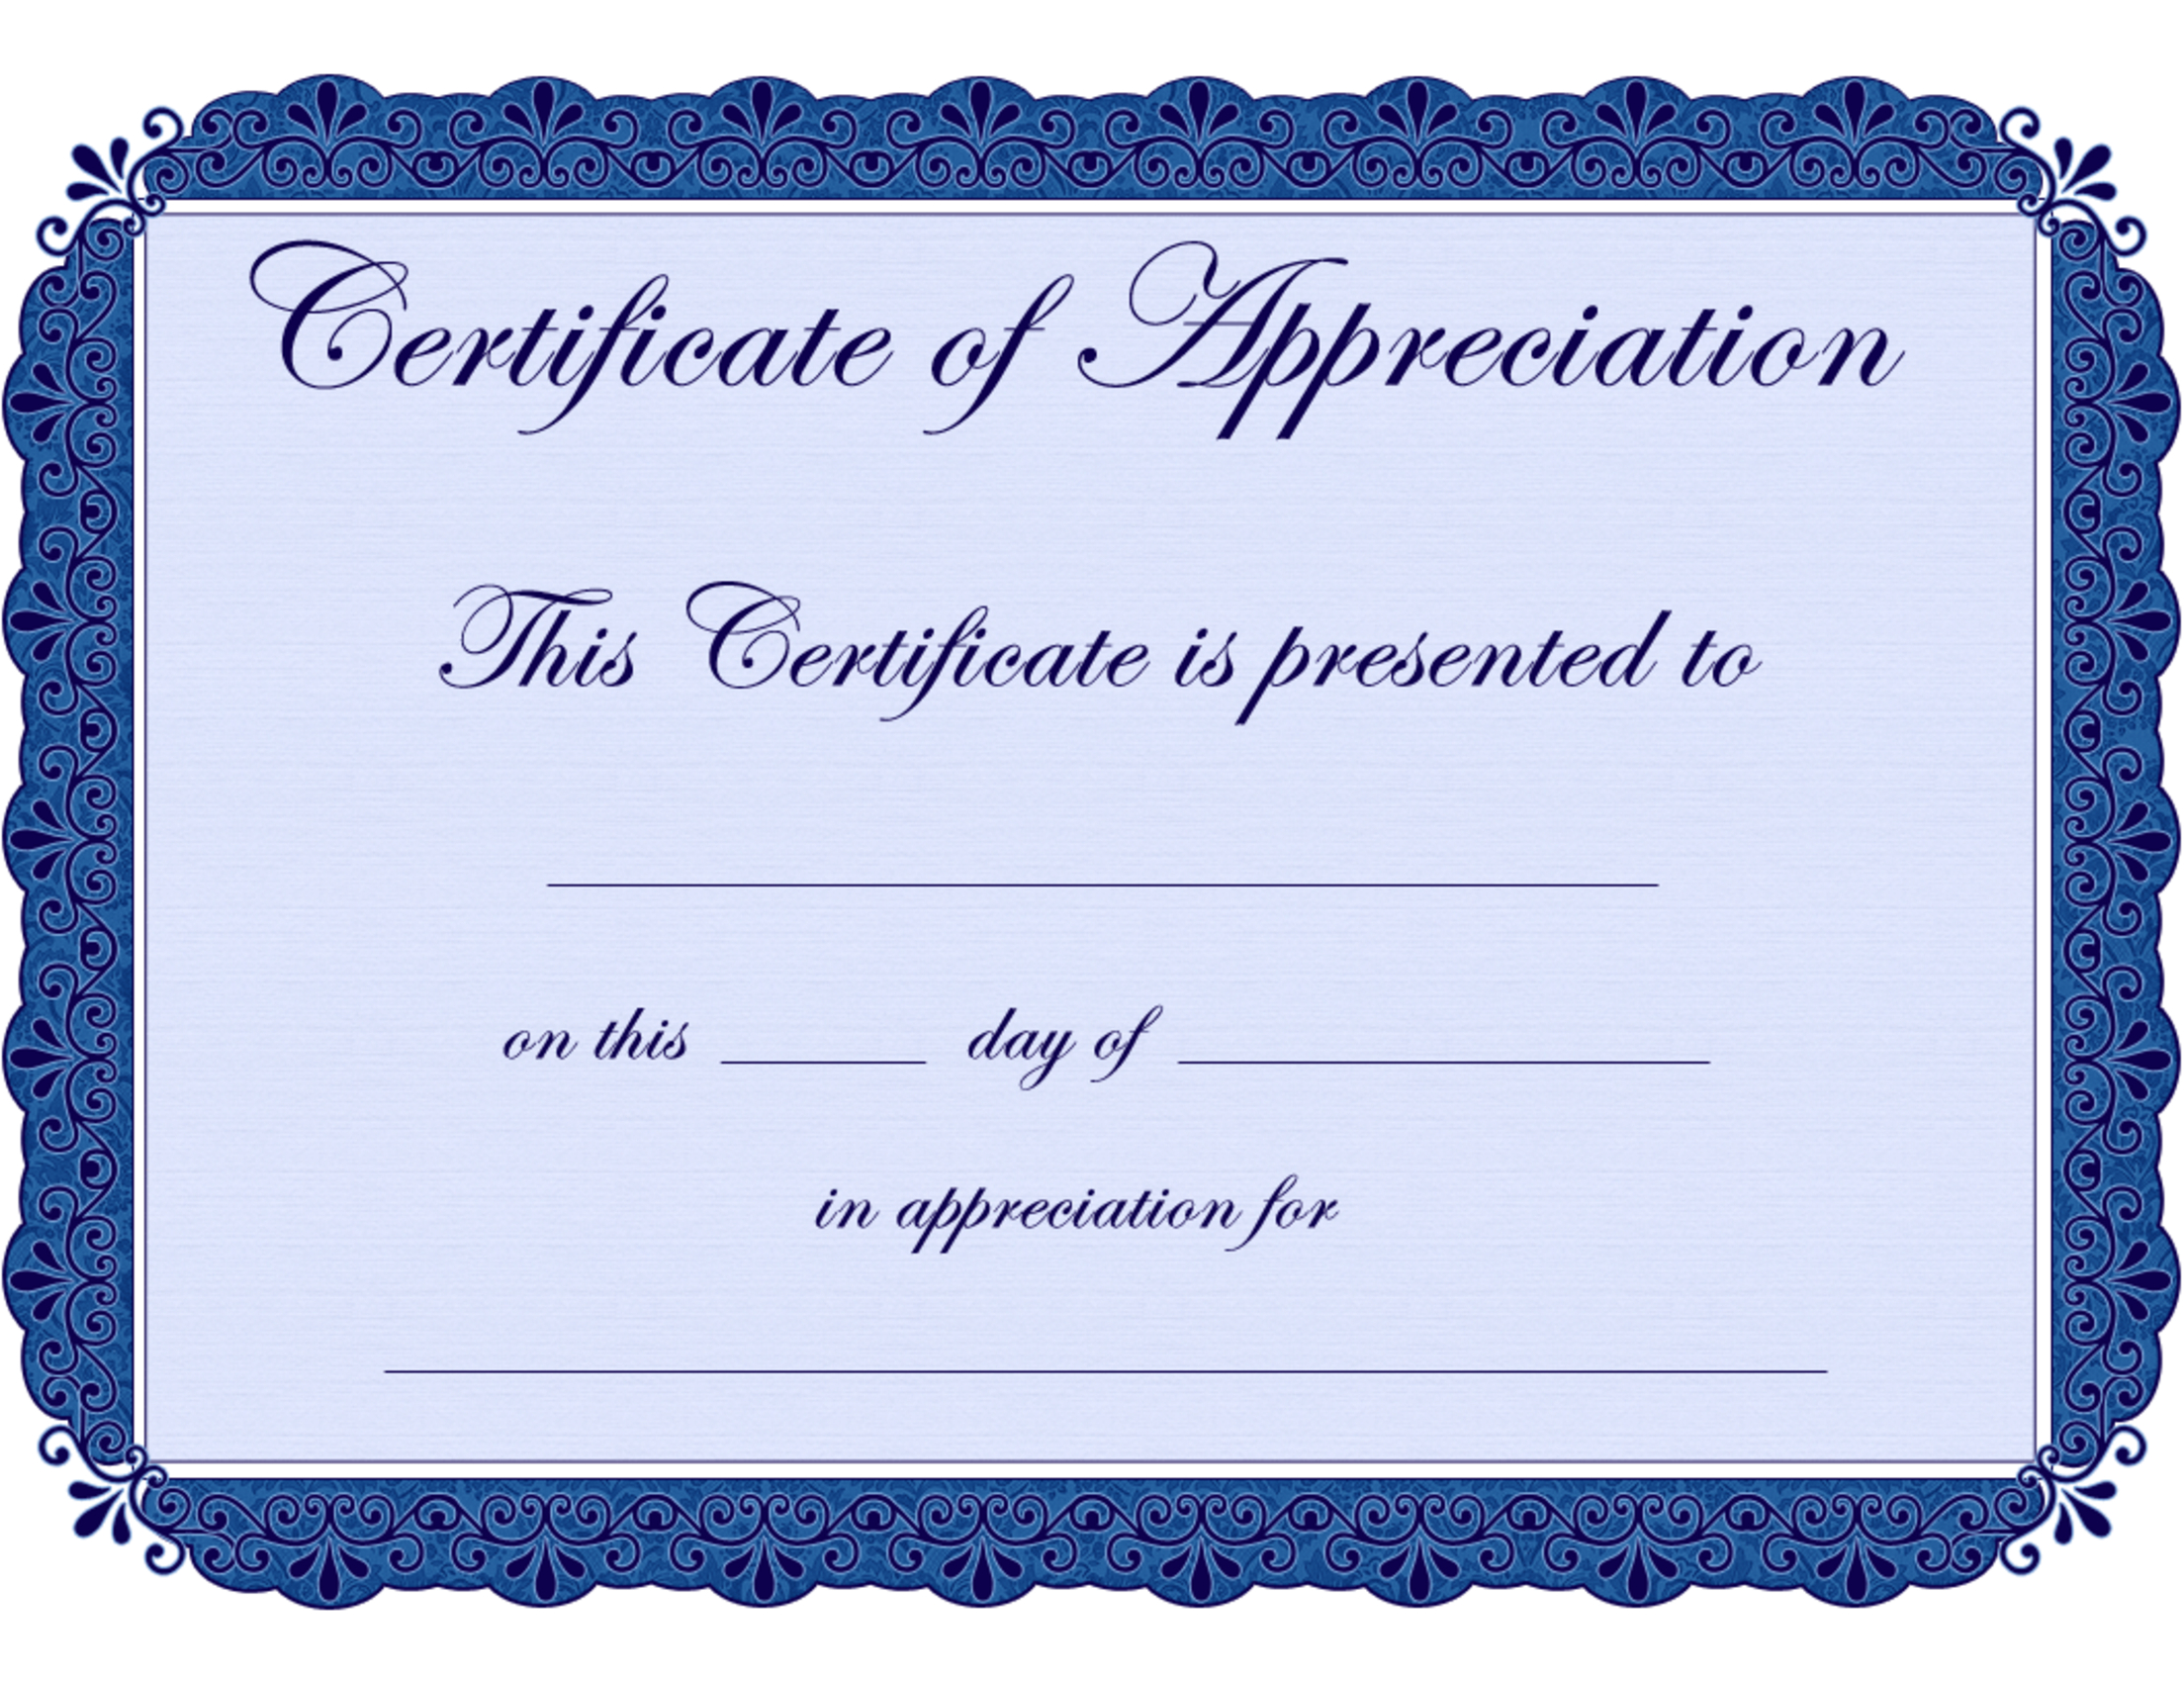 Free Printable Certificates Certificate Of Appreciation Certificate - Free Printable Certificates For Teachers